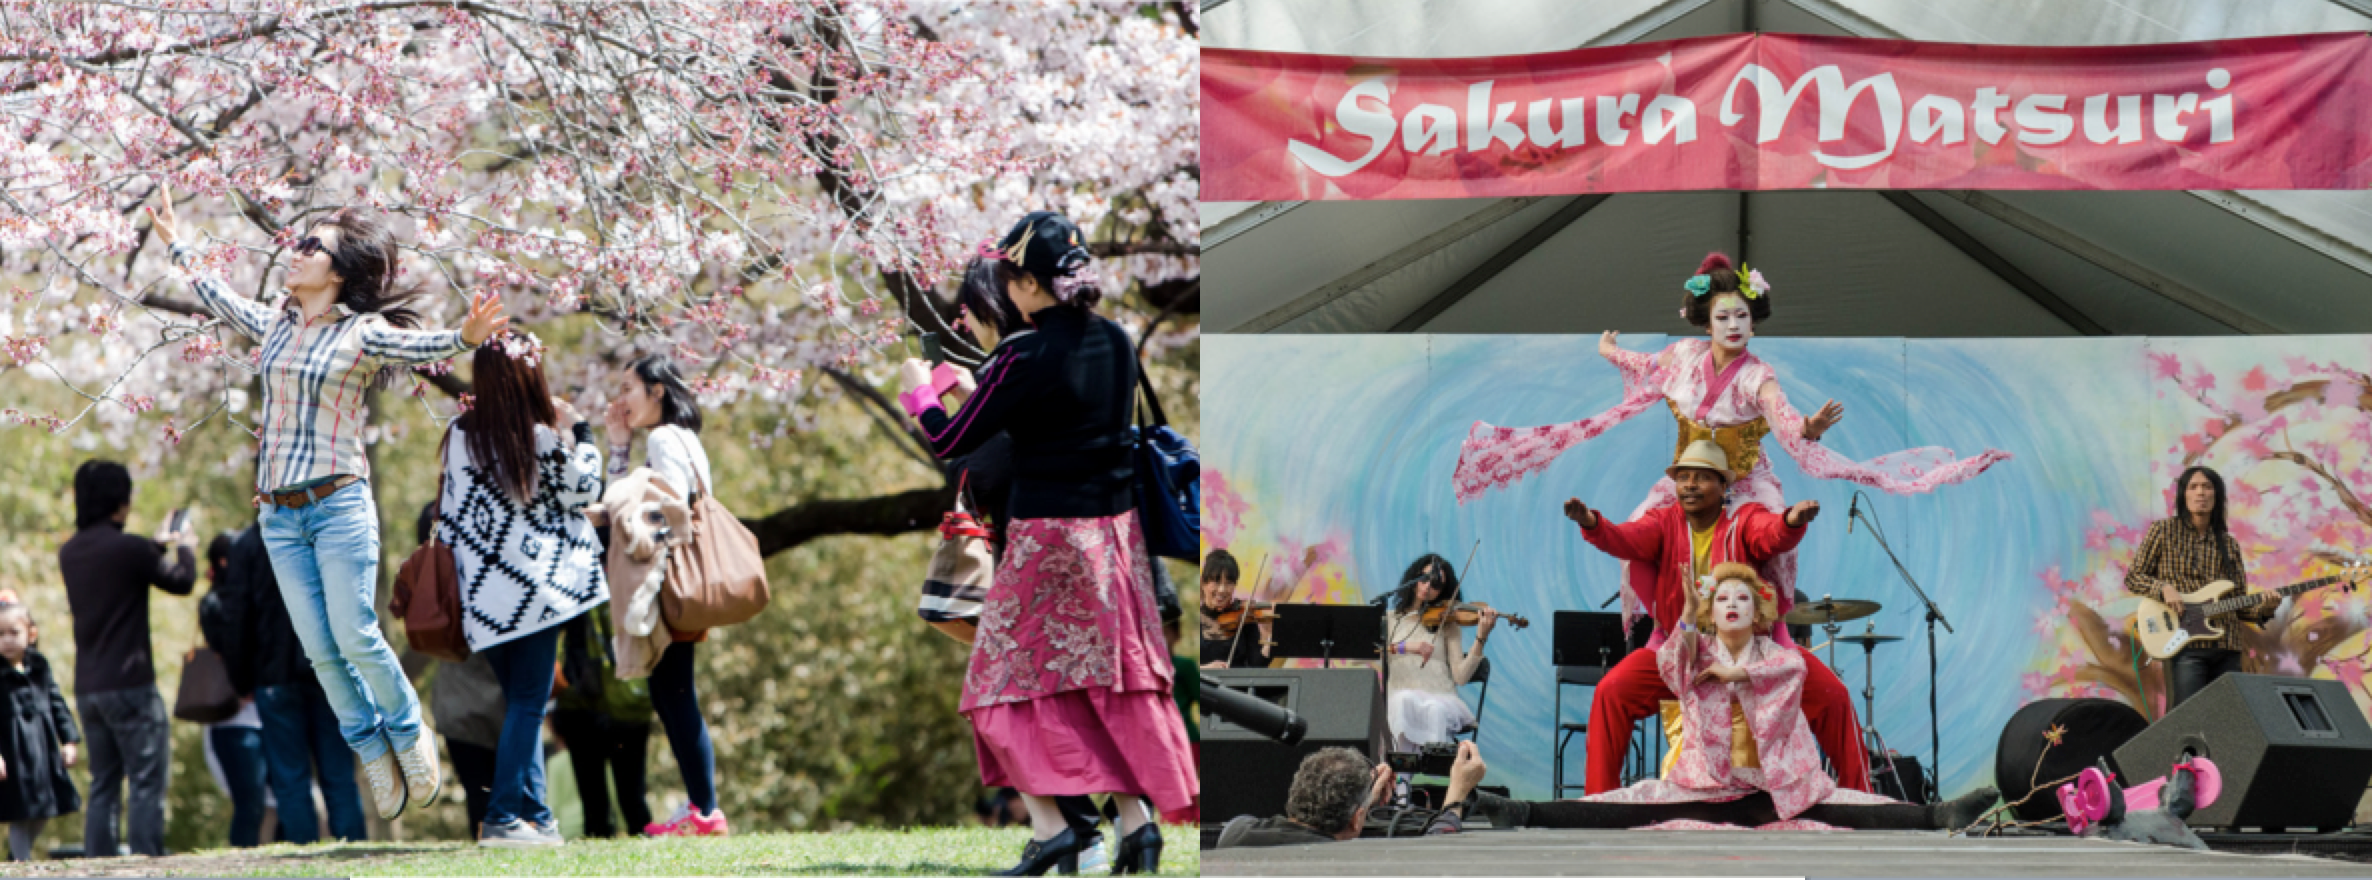 Brooklyn Cherry Blossom Festival